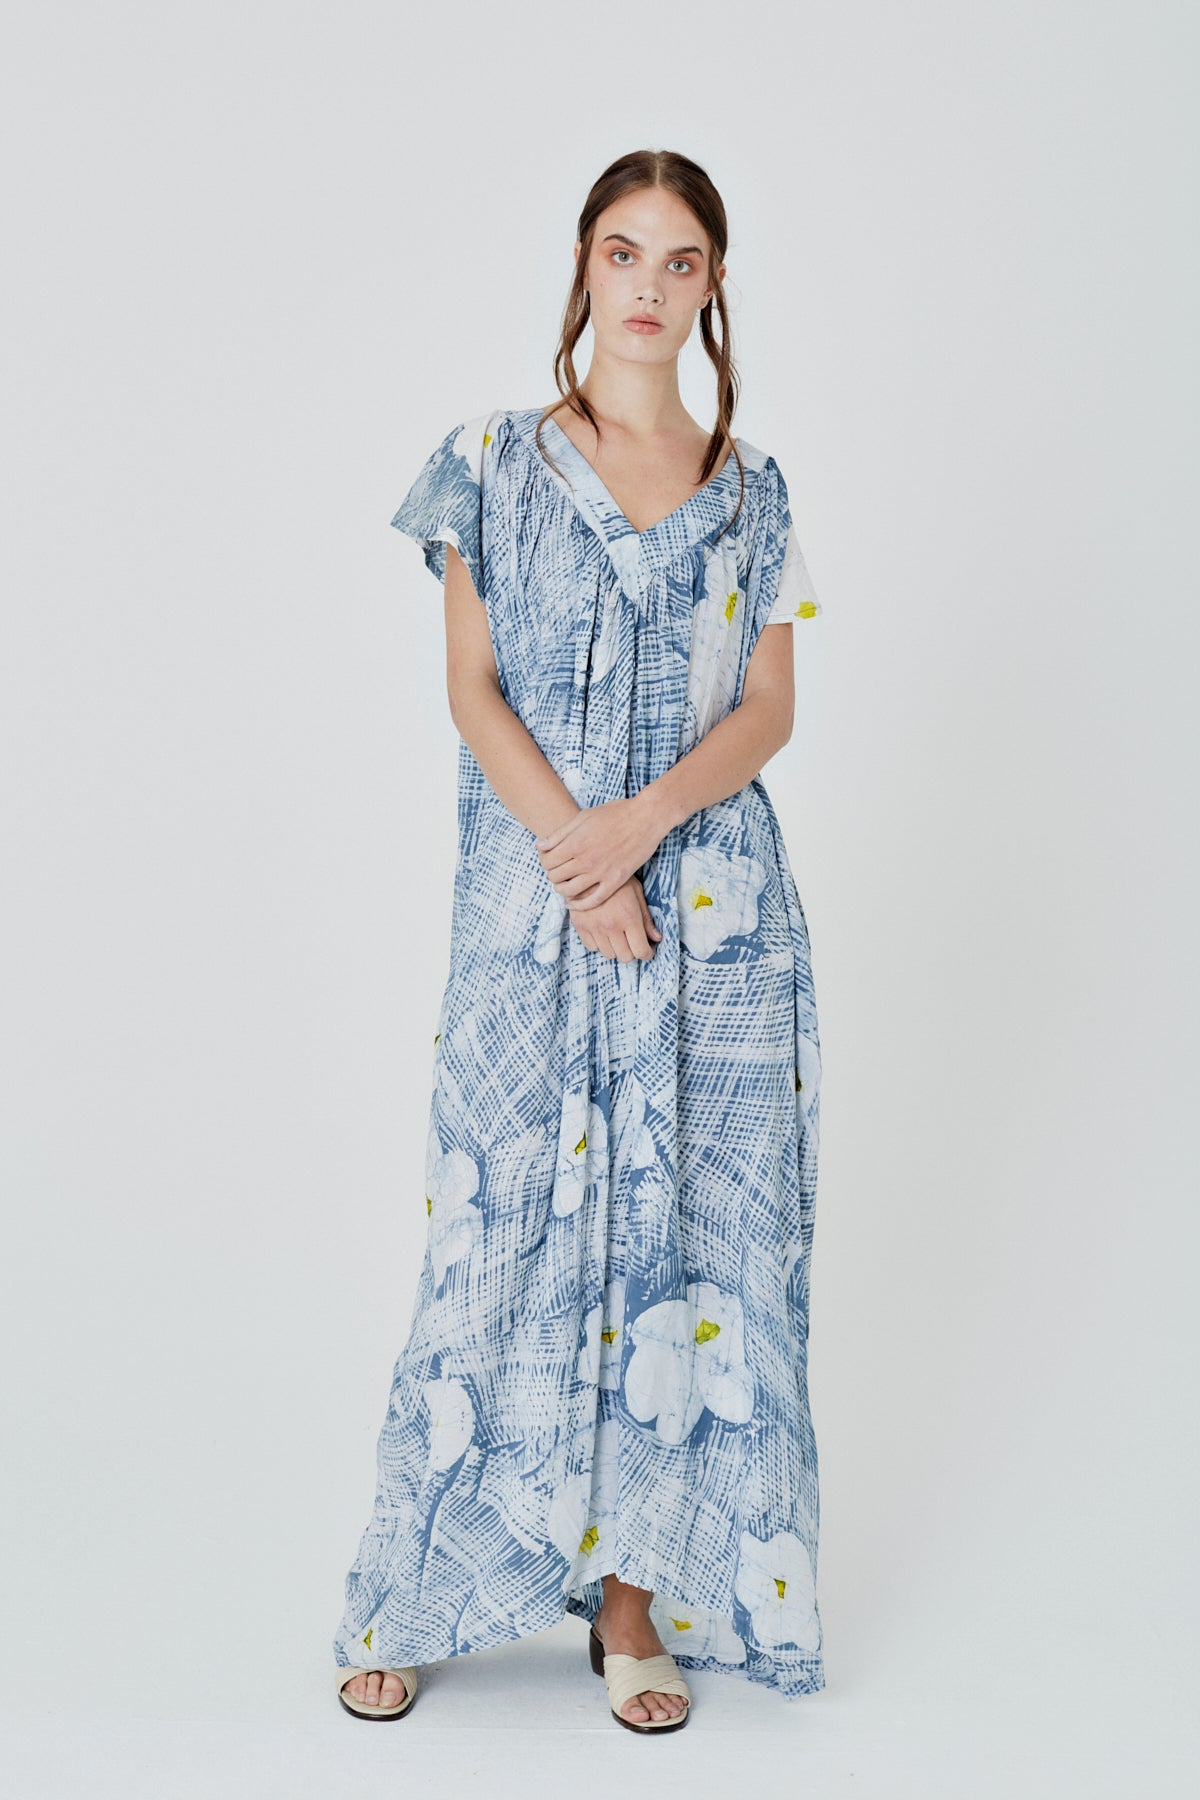 Muumuu Dress in Gauzy Daffs